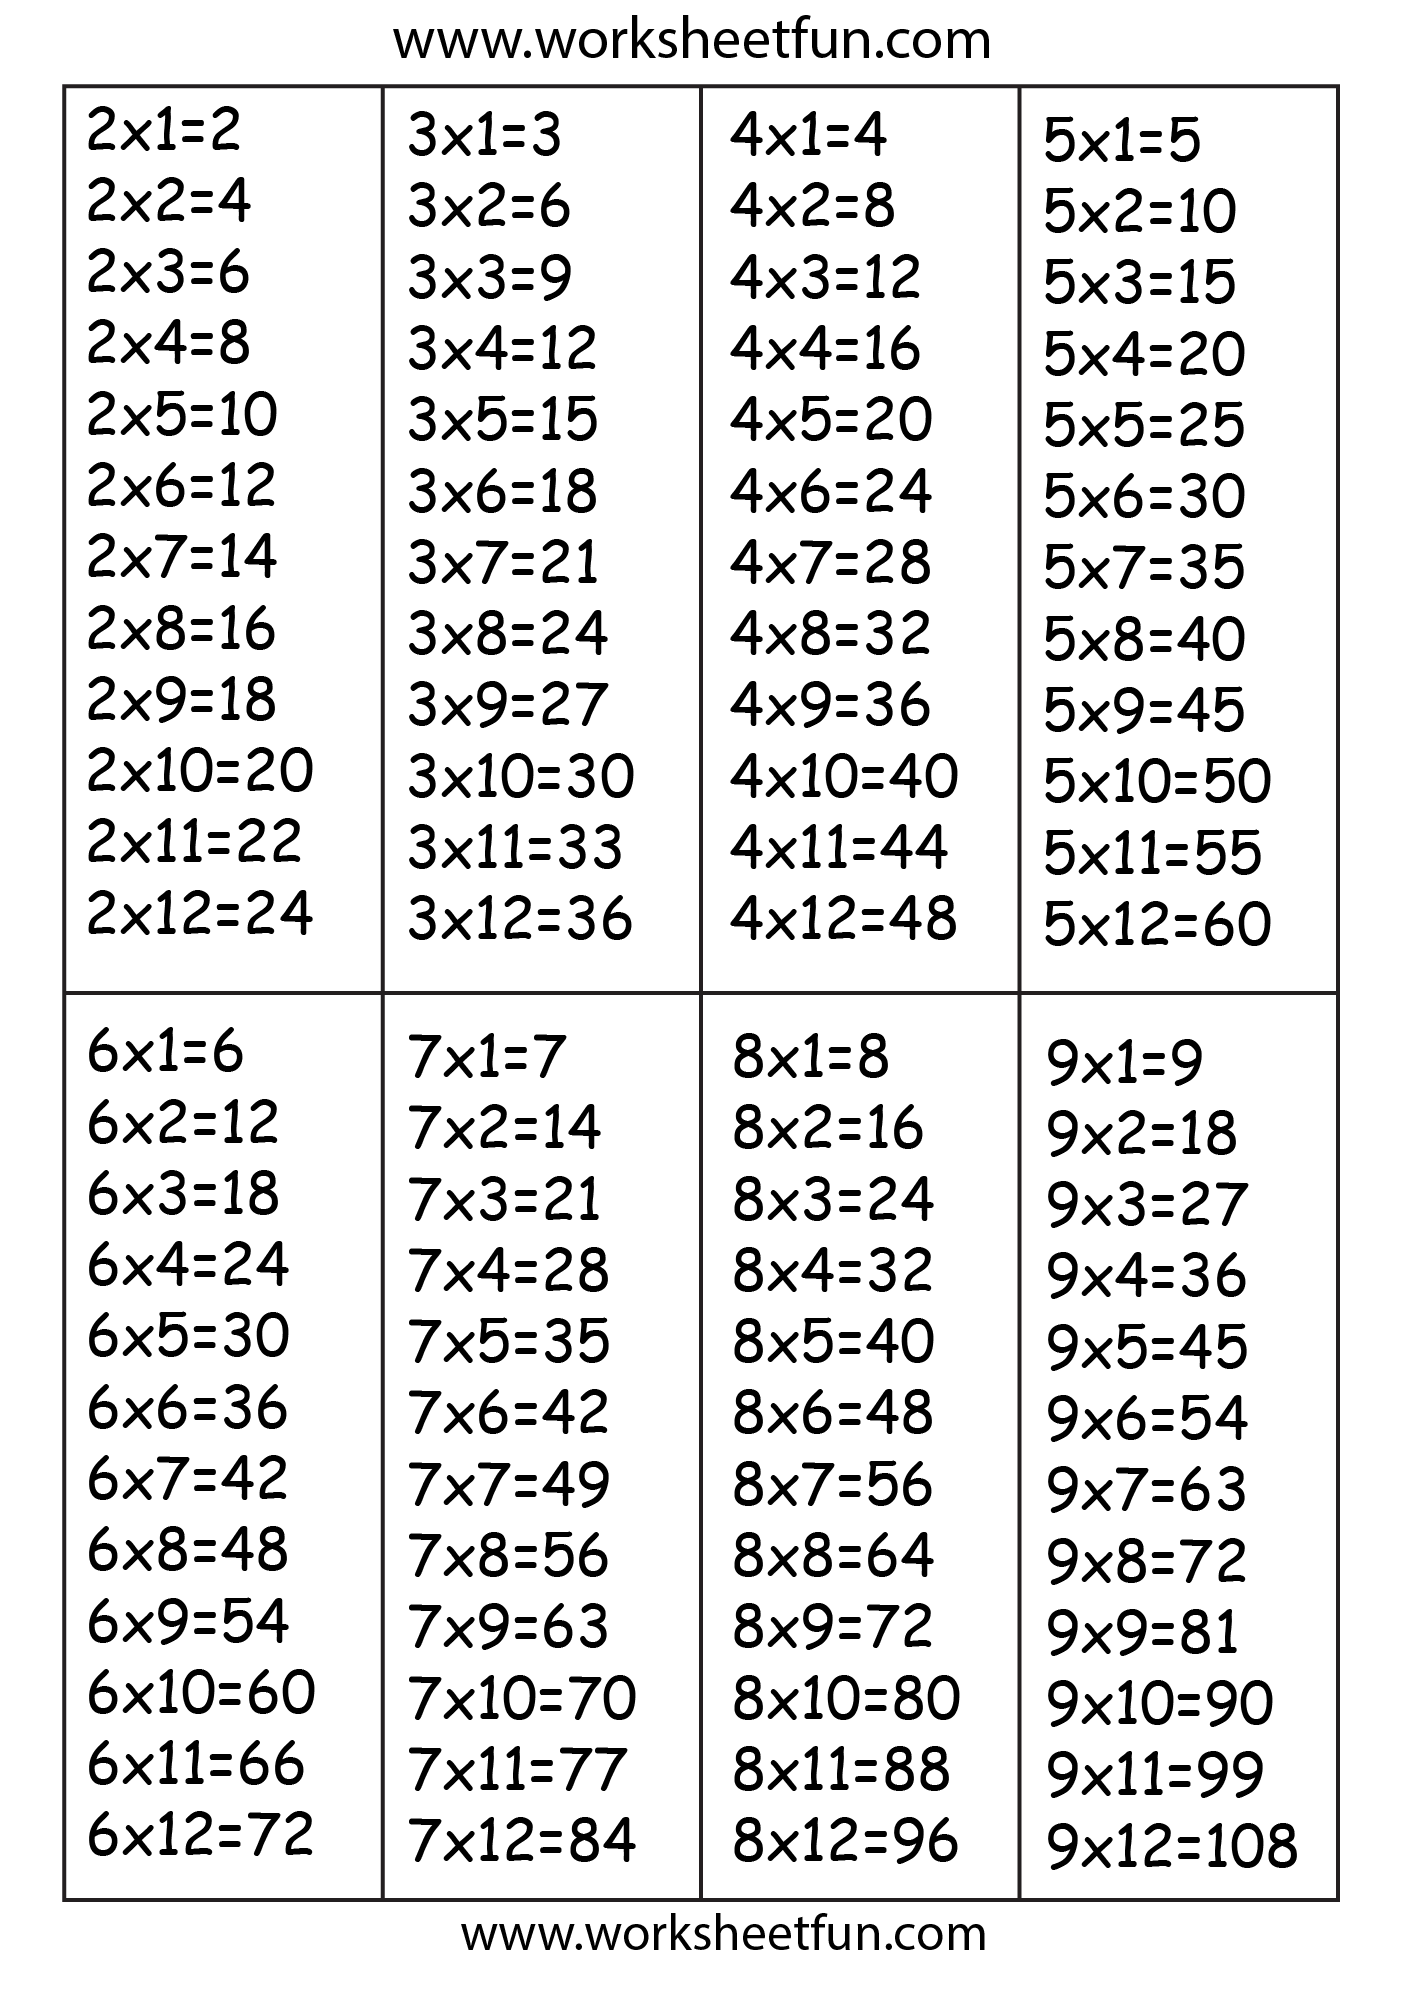 Times Tables FREE Printable Worksheets Worksheetfun – Multiplication Worksheets 9